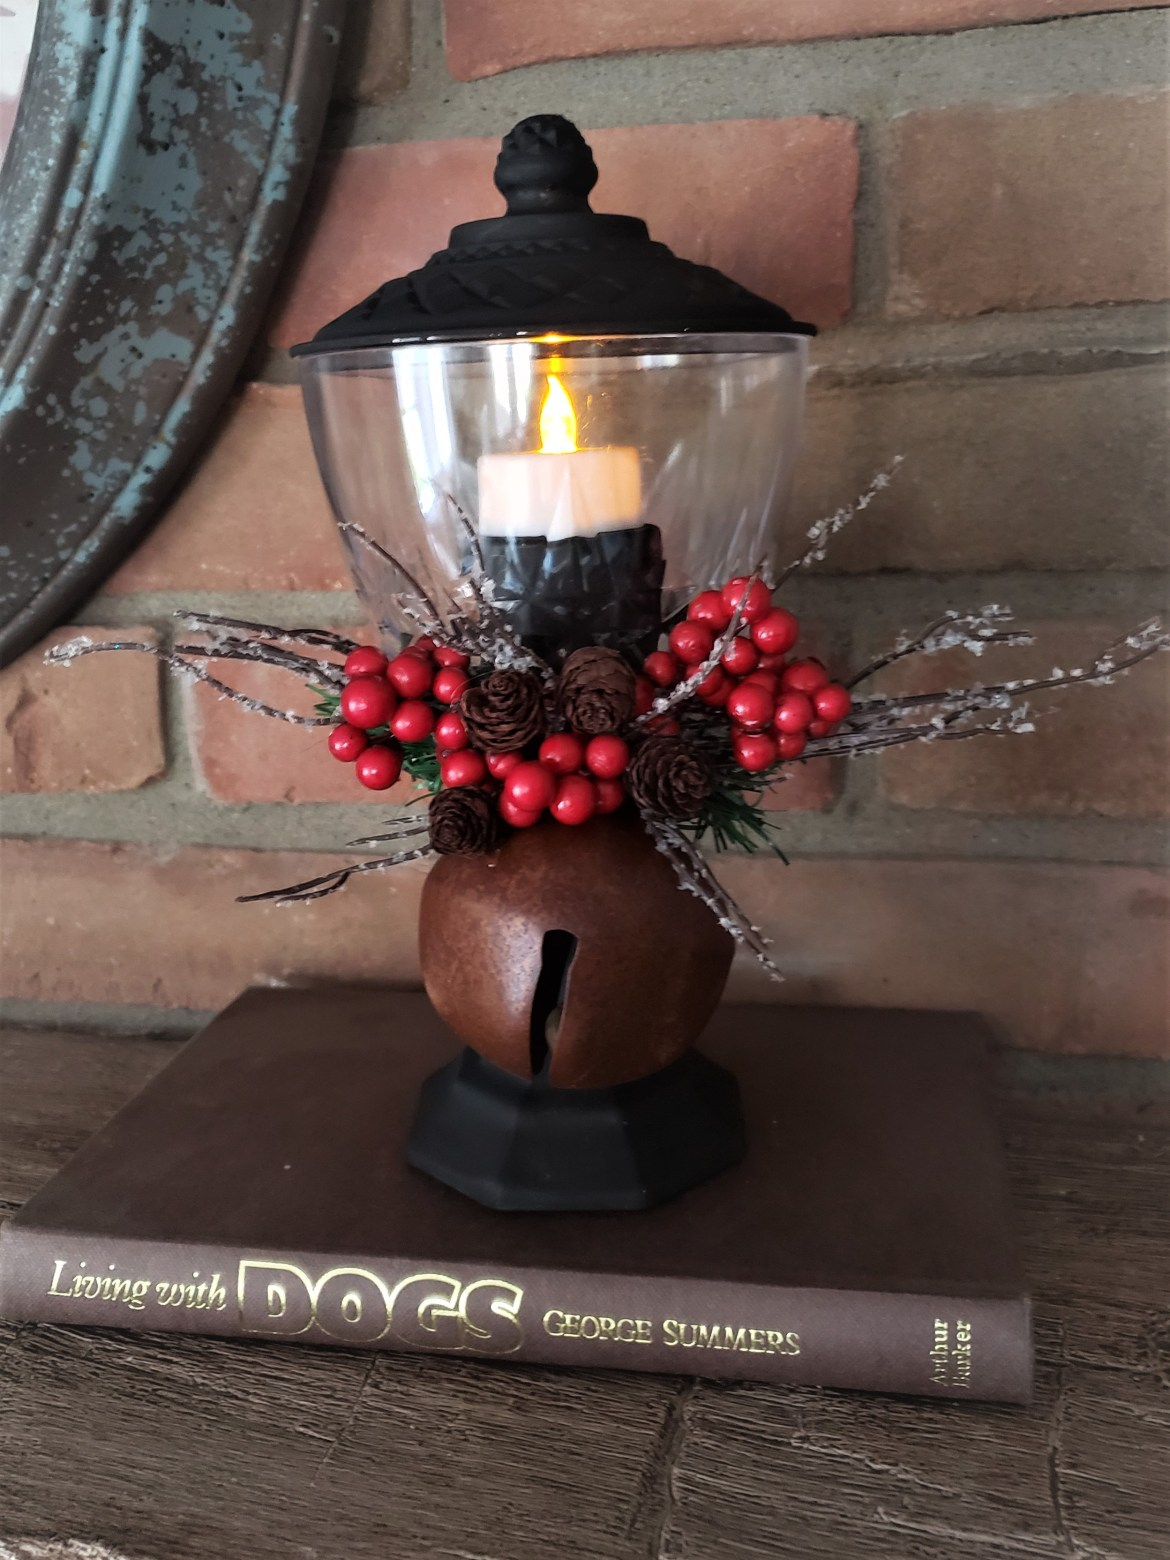 Dollar Tree Candy Dish made into a Christmas Lantern